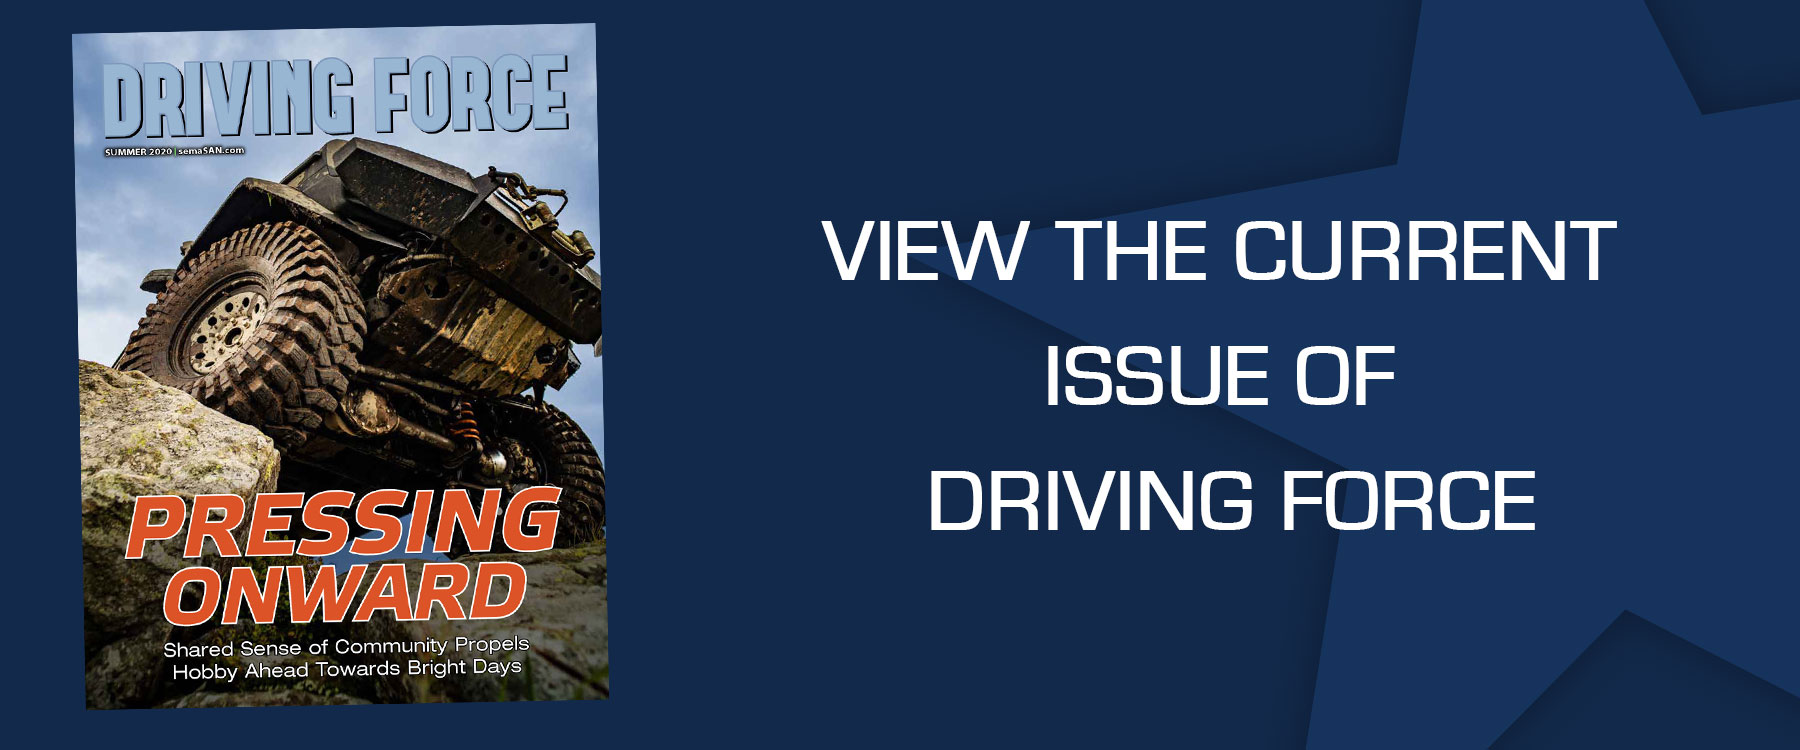 Driving Force Current Issue - Pressing Onward